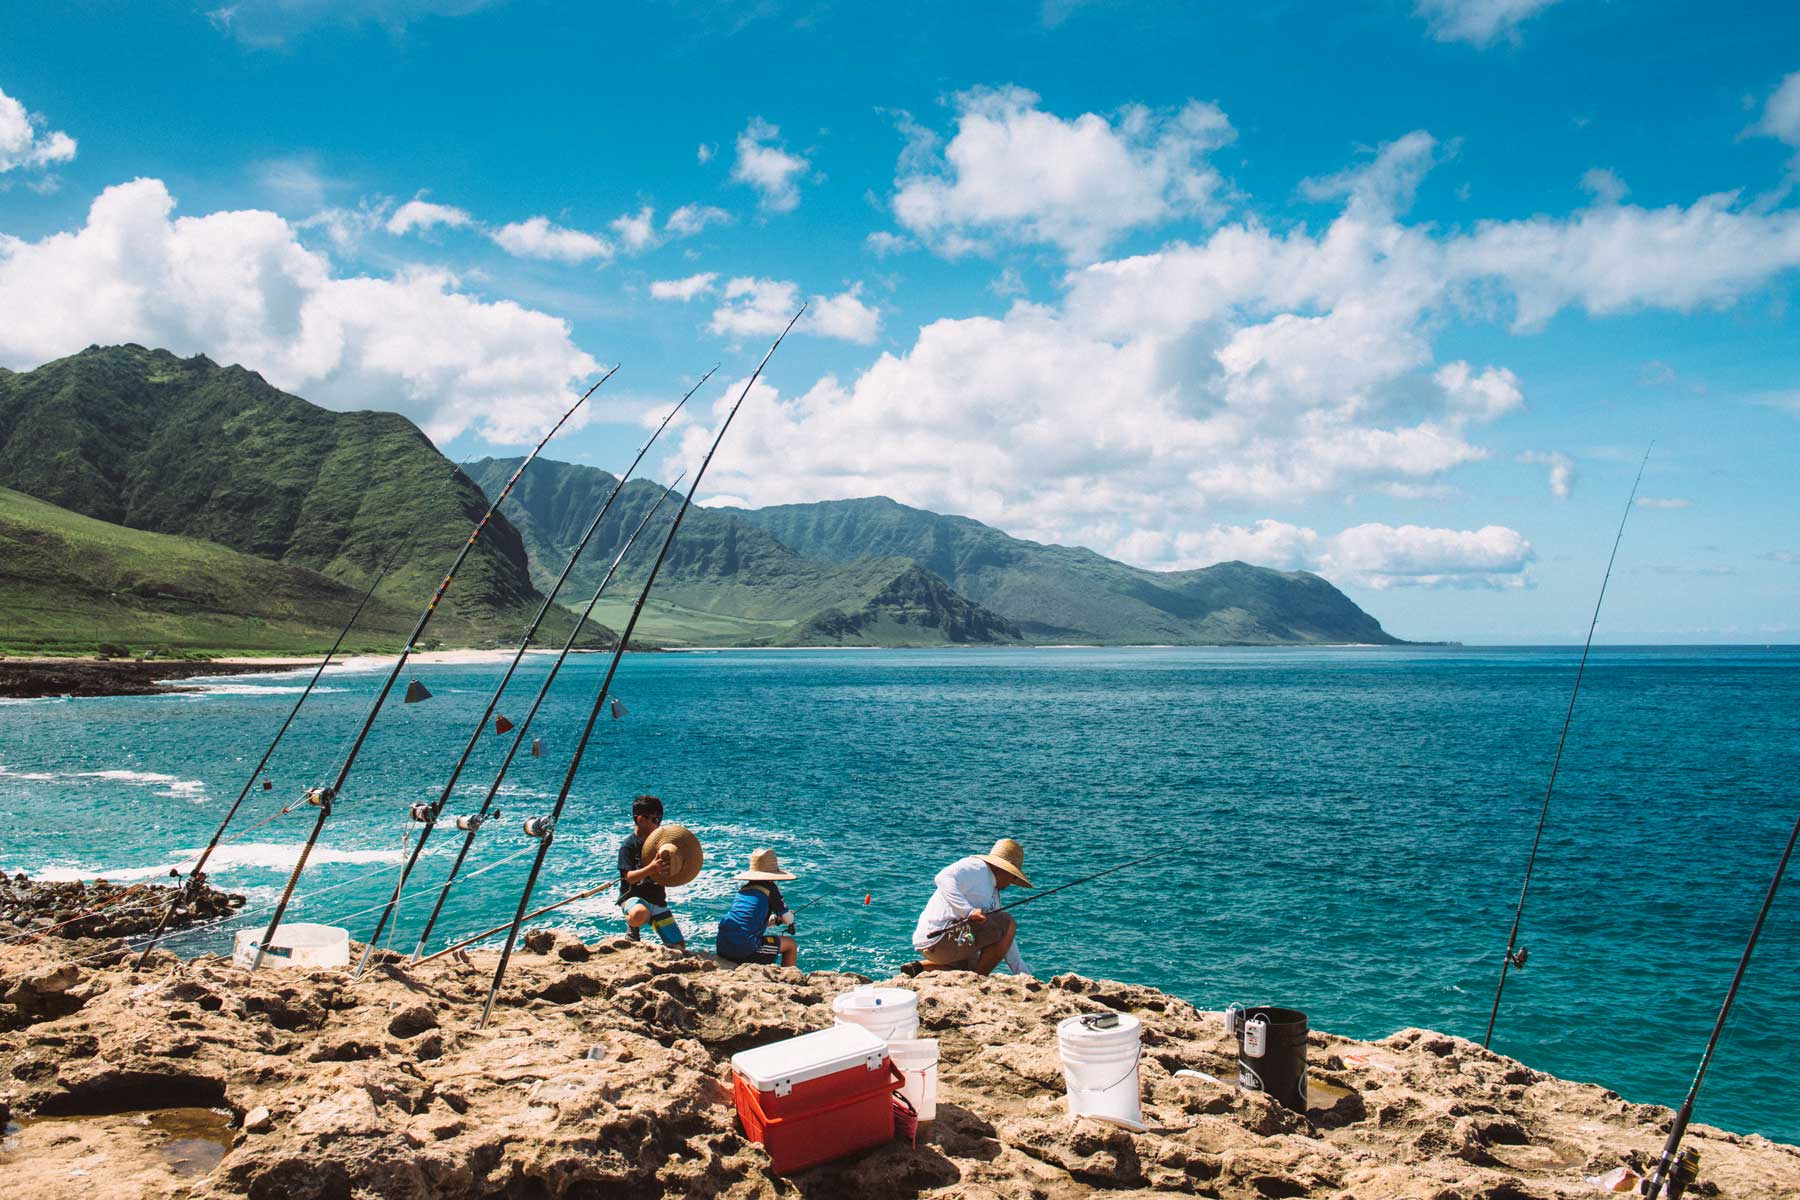 Hawaiian Family Fishing at Ka'ena Point in Oahu